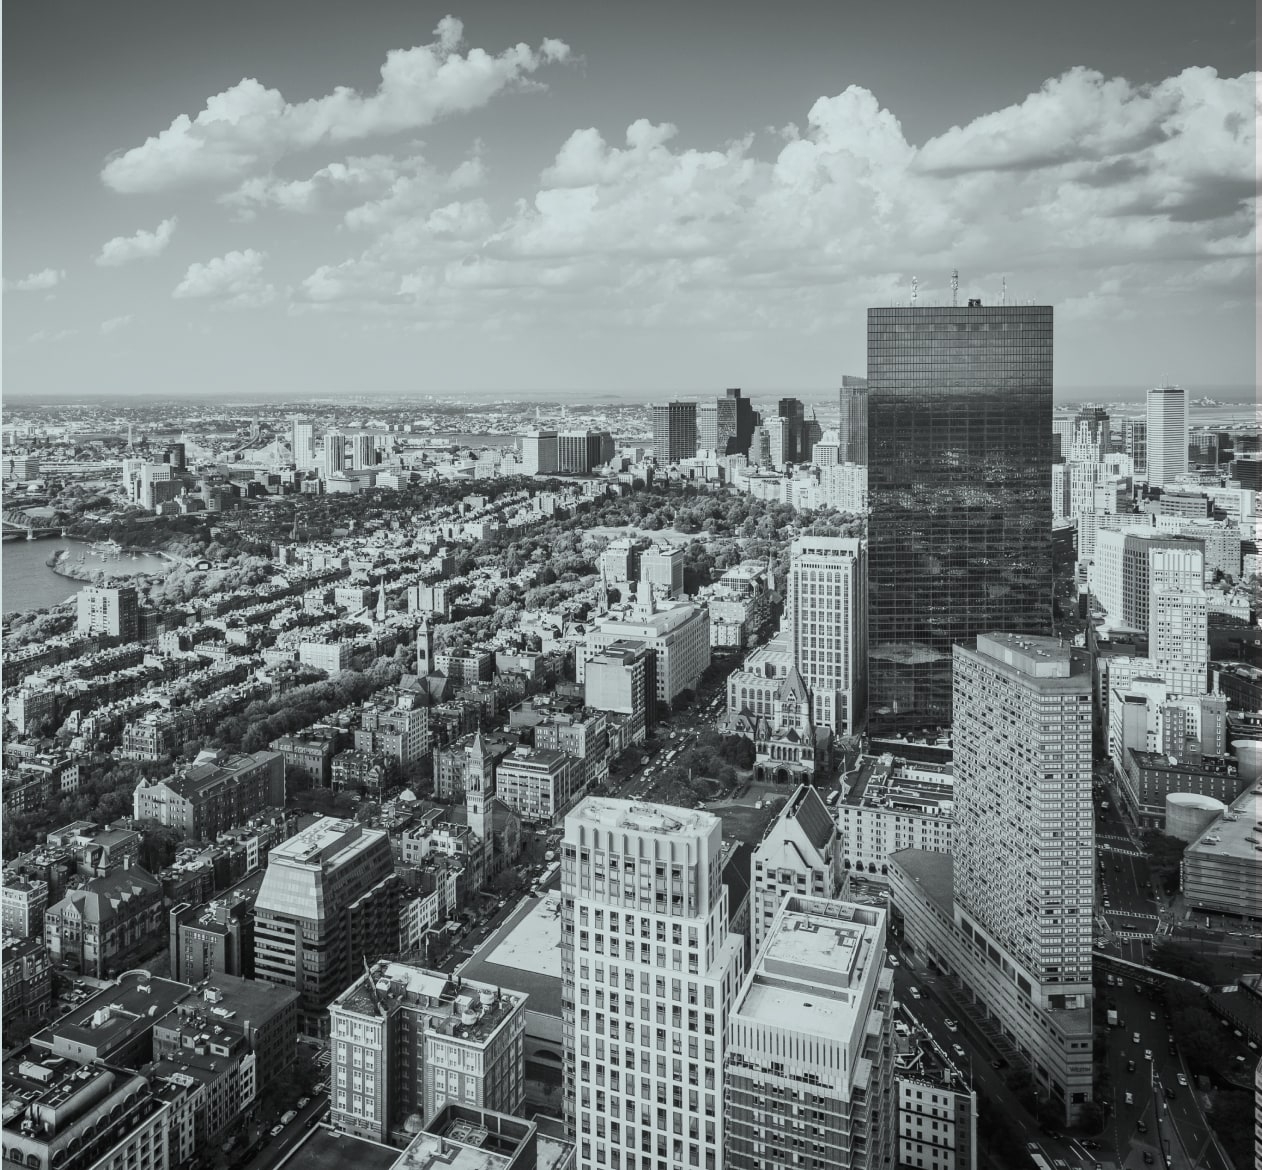 A view of Boston perspective from a tall building